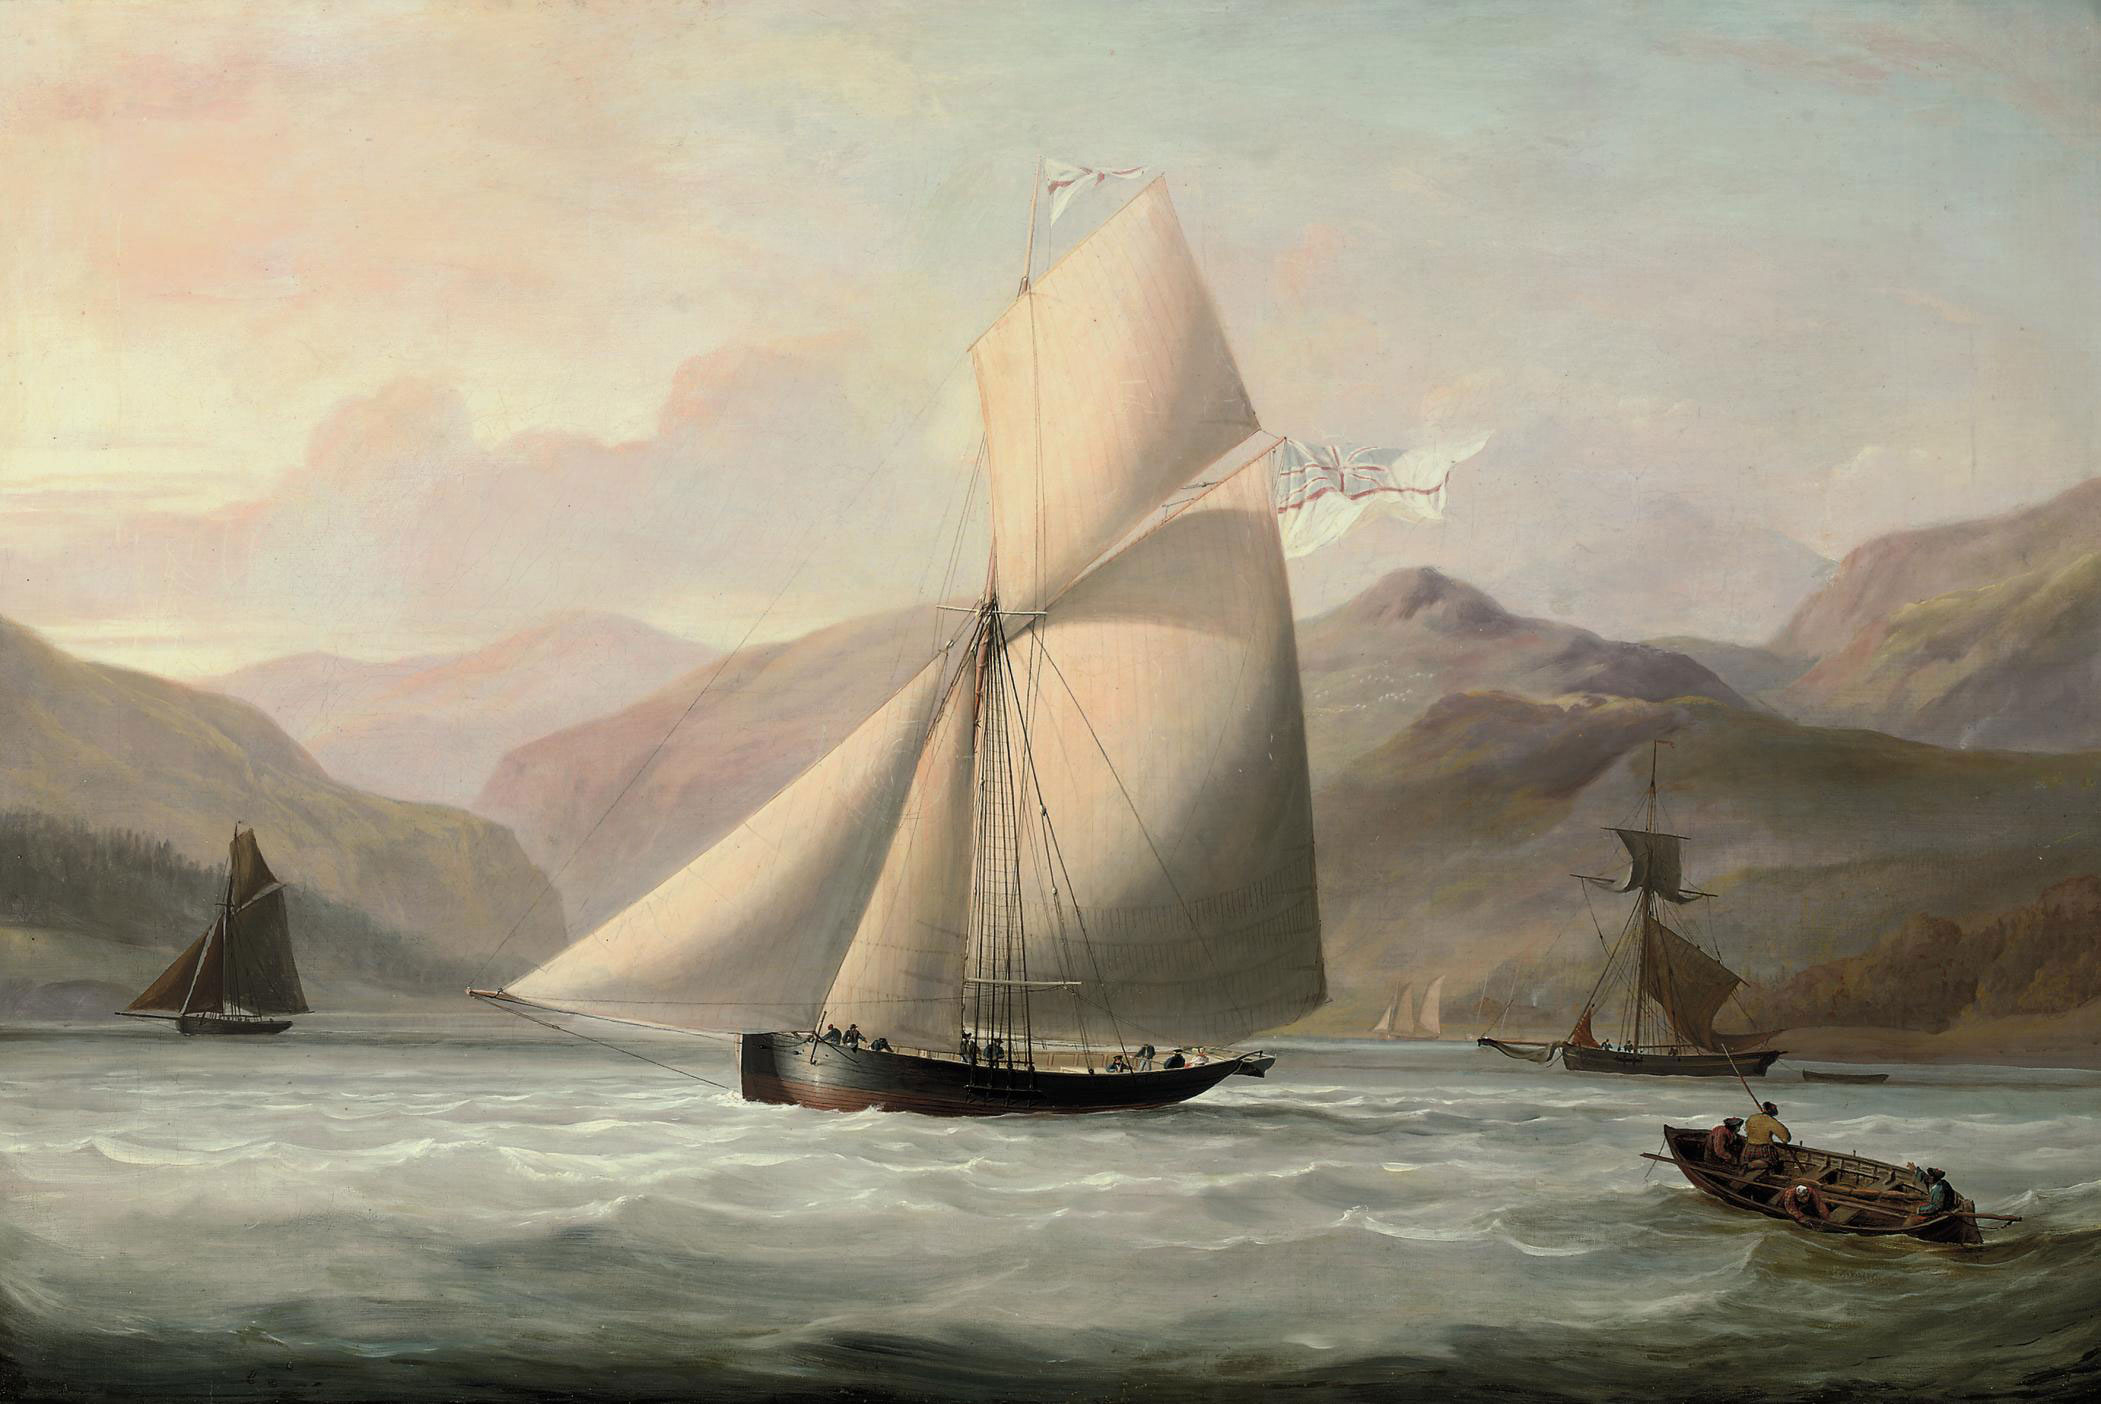 Sir John Bayley's cutter yacht Nymph flying the ensign of the Royal Yacht Squadron in Scottish waters